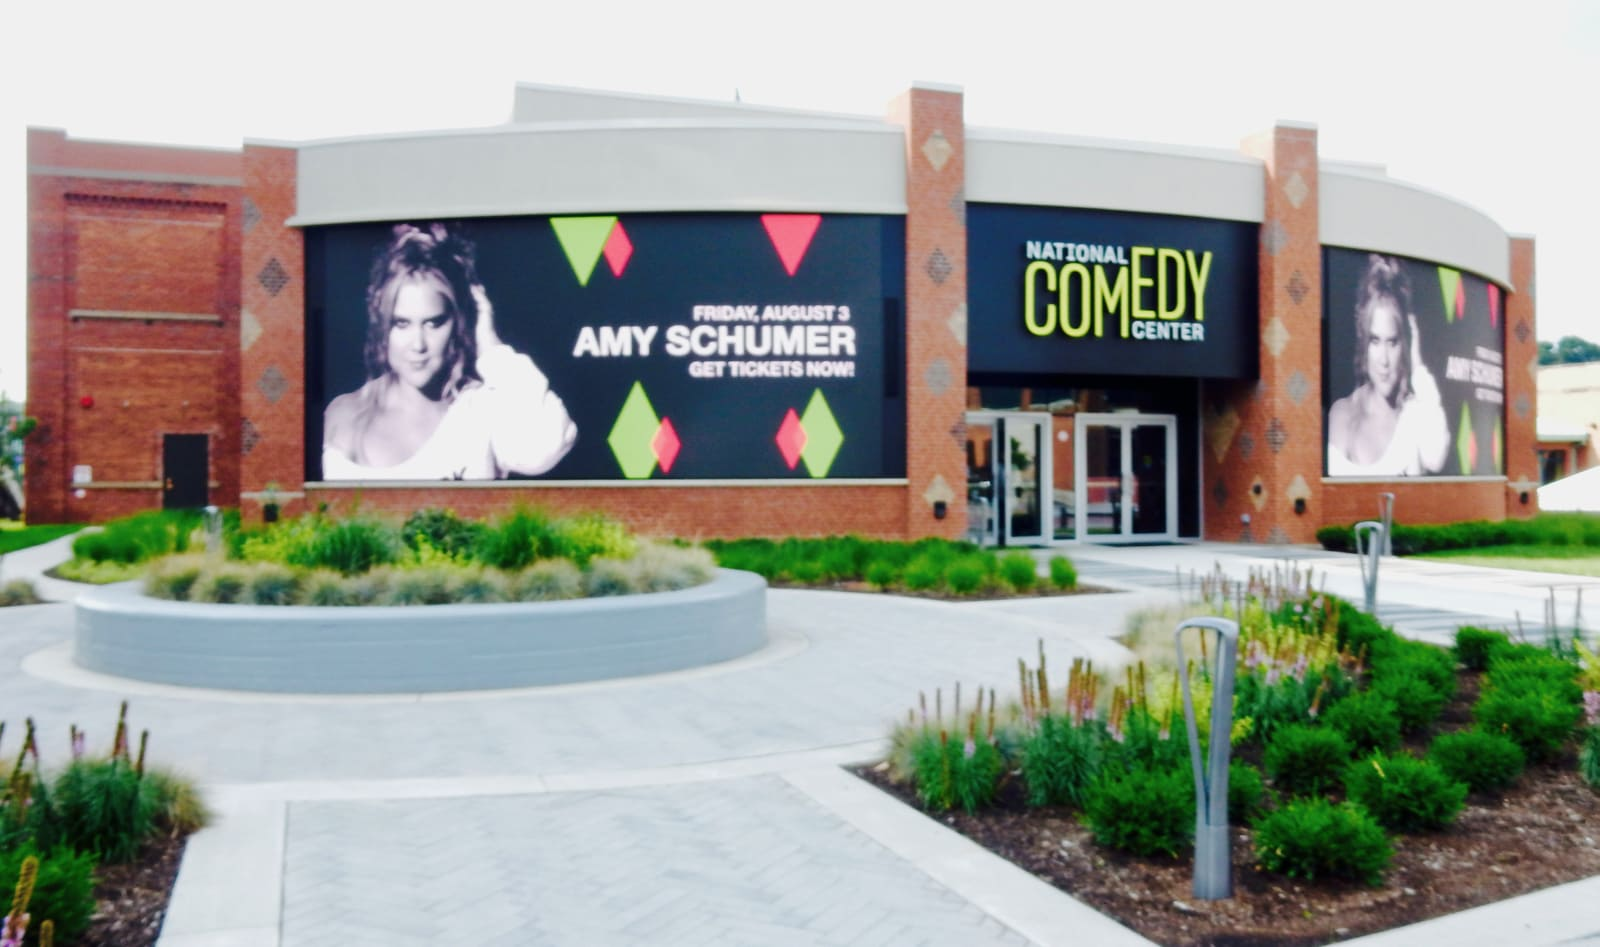 National Comedy Center, Jamestown NY